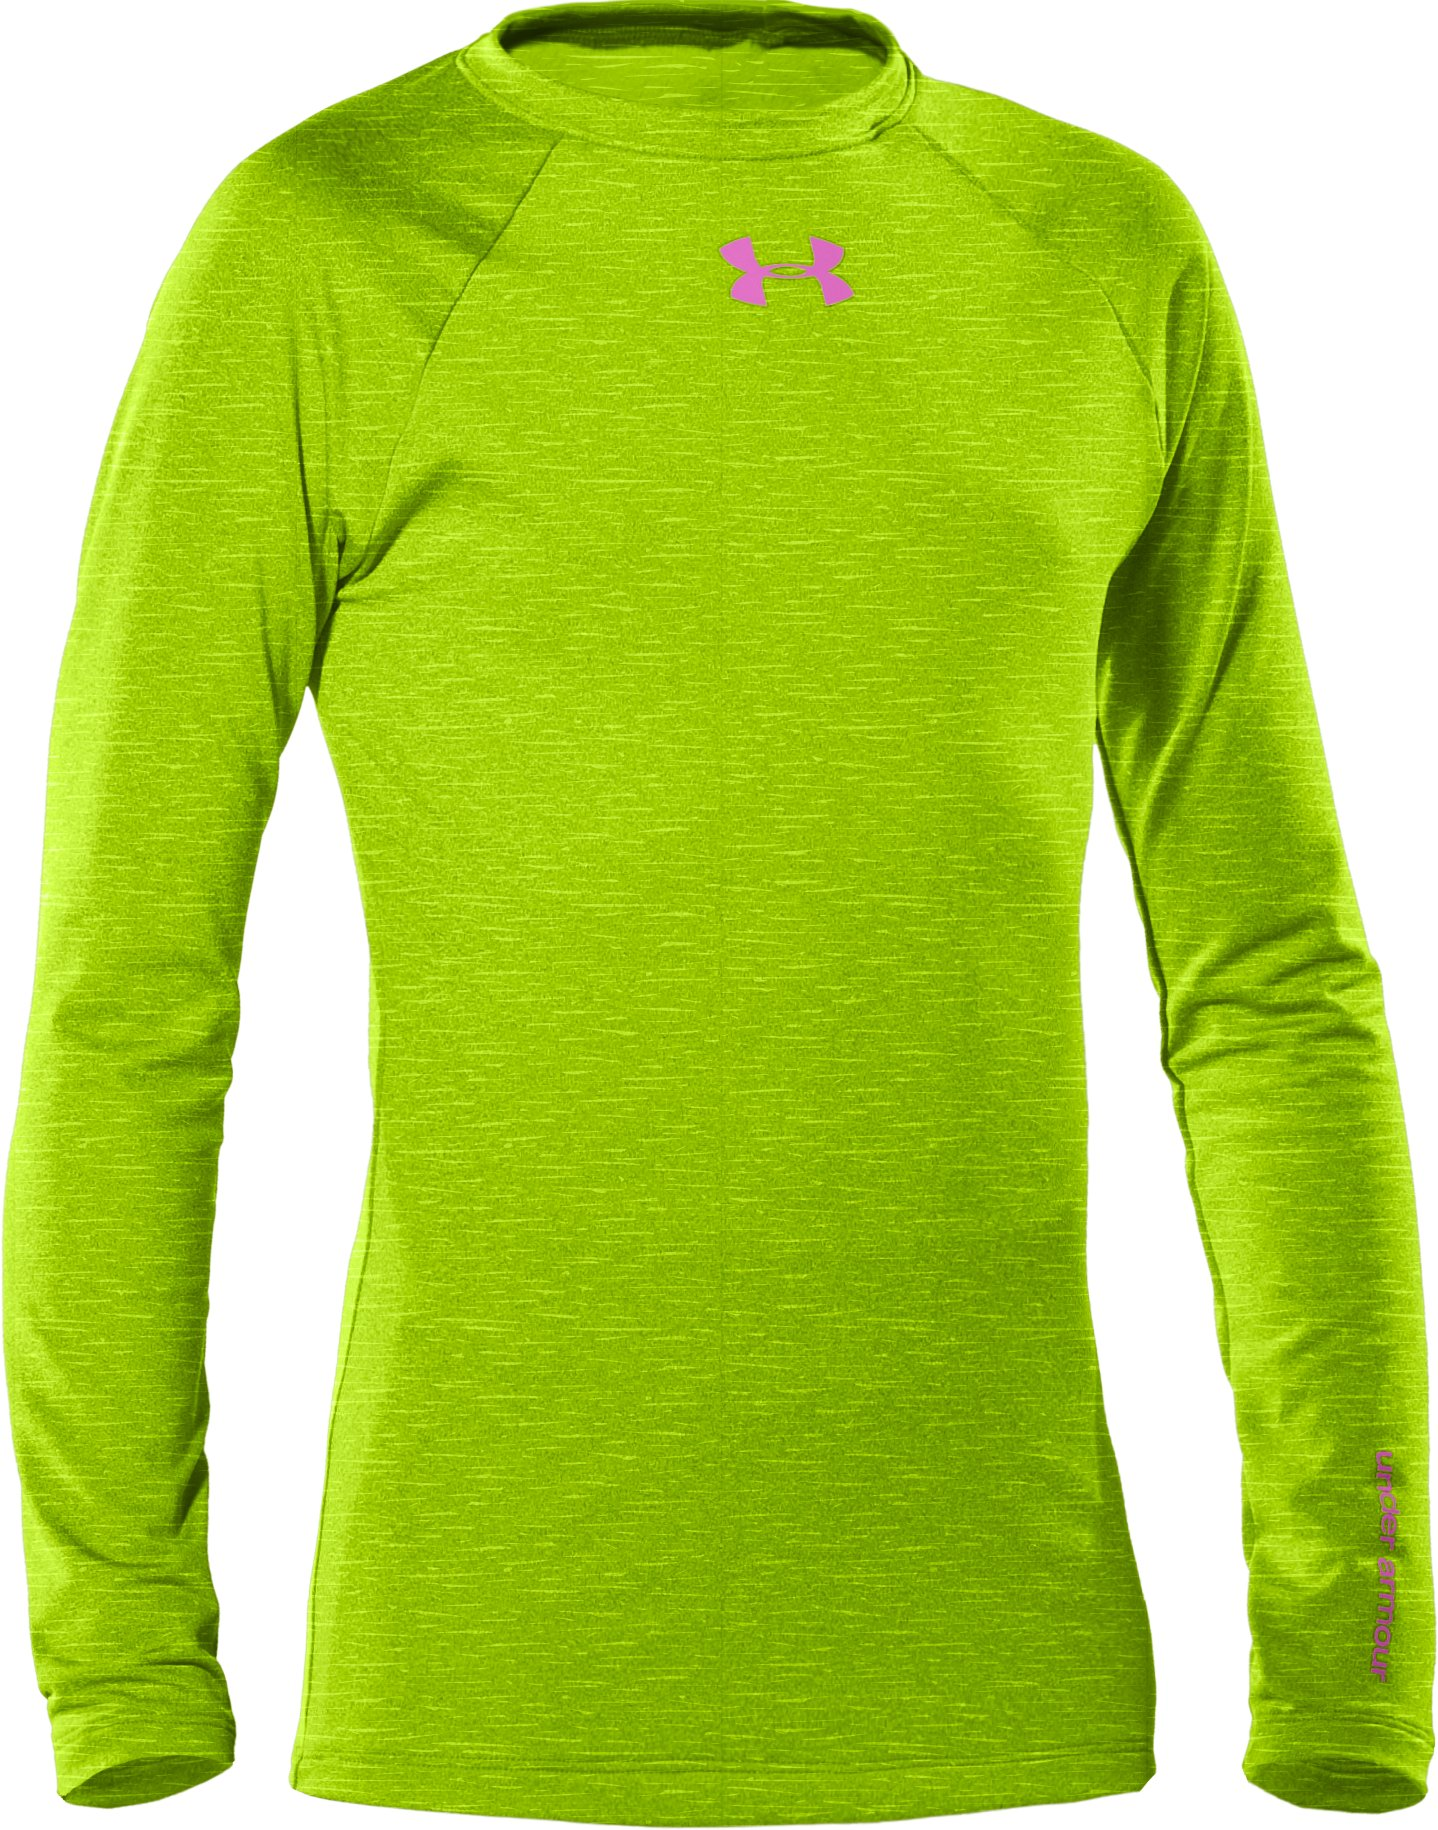 Girls' ColdGear® Fitted Long Sleeve Crew, HYPER GREEN, zoomed image